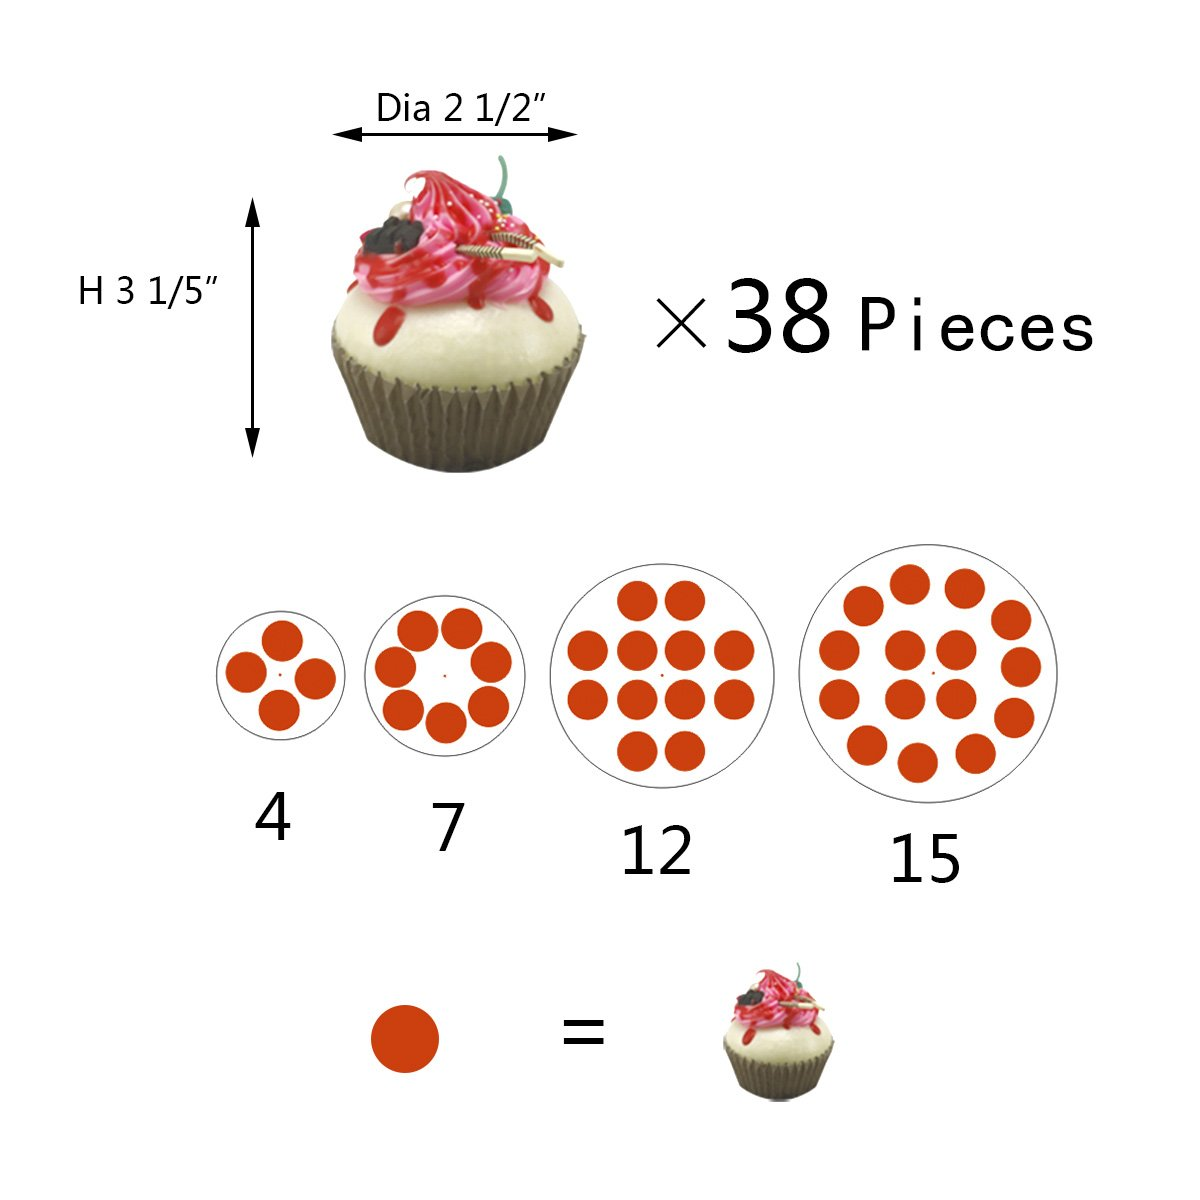 2018 New Style 4 Tiers Cupcake Stands Tower - Clear Acrylic Display Holder Tree - Tiered Cupcake Display- Tiered Round Pastry Stand Dessert Stands Wedding Cake Stands For Parties Birthday - DYCacrlic by DYCacrlic (Image #3)